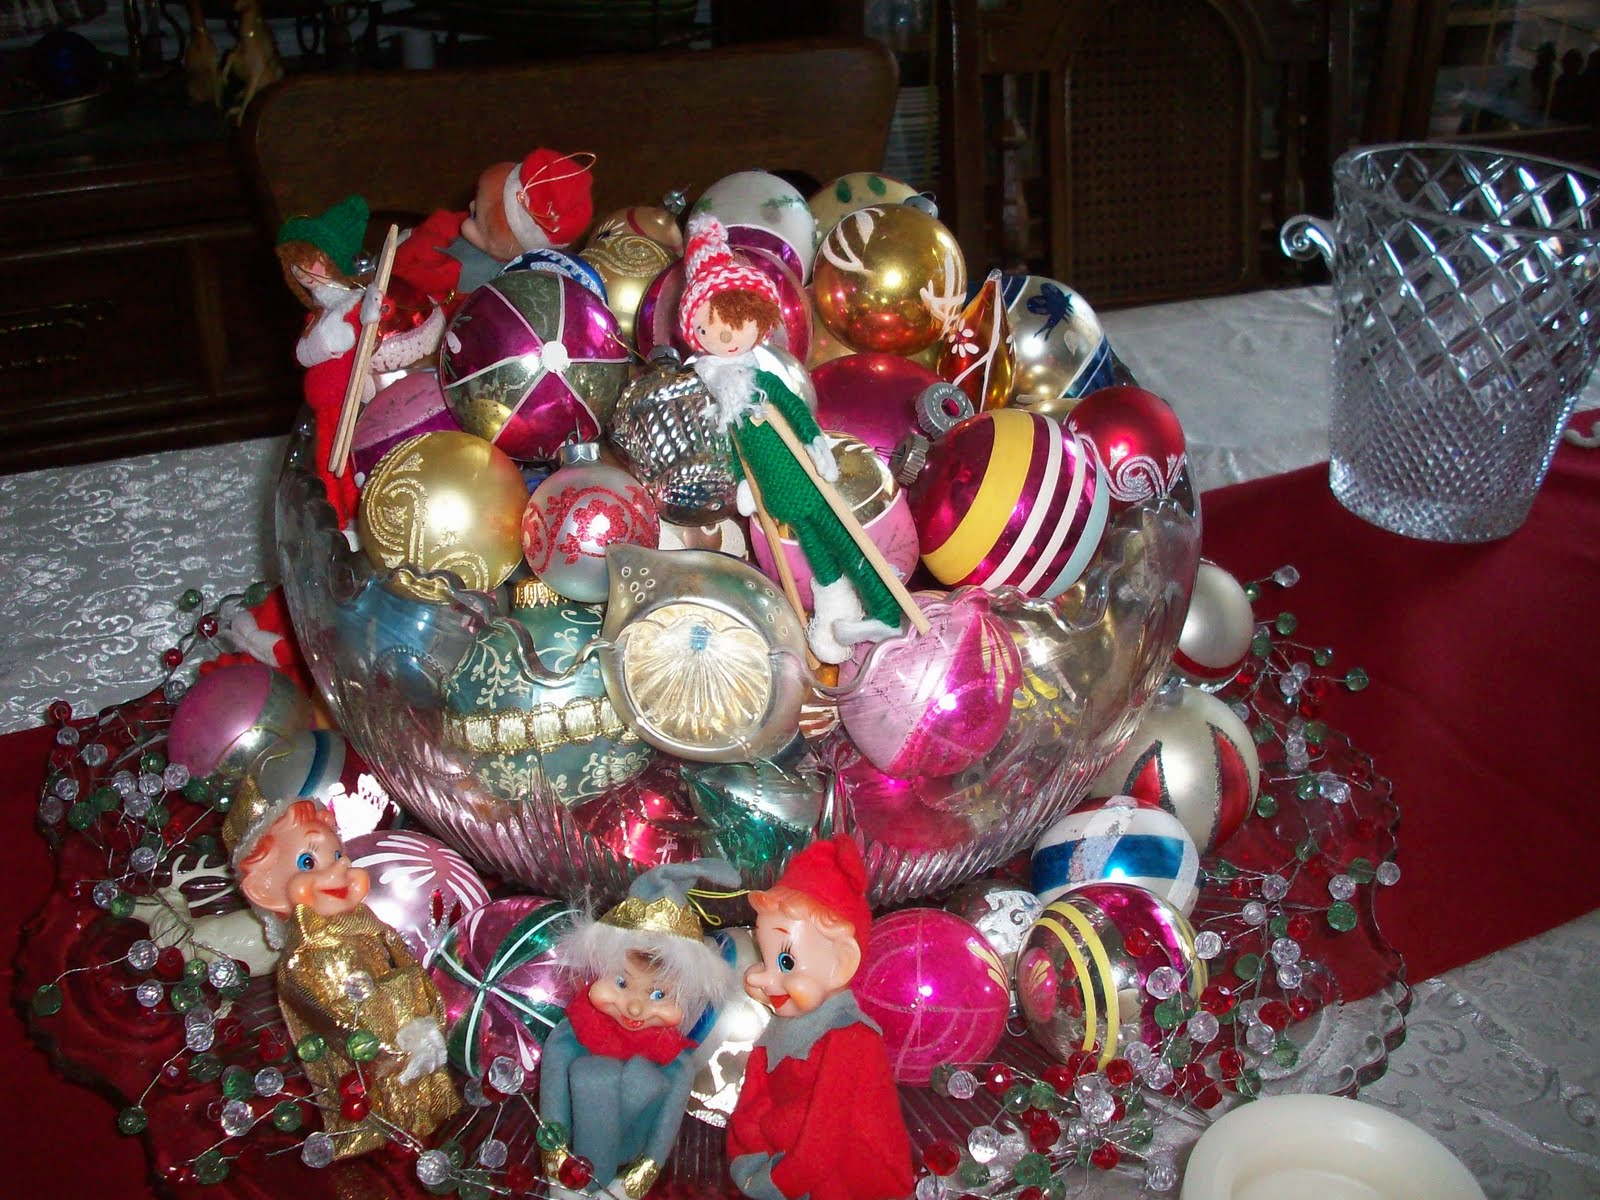 There's Another Stunning Bowl Of Ornaments